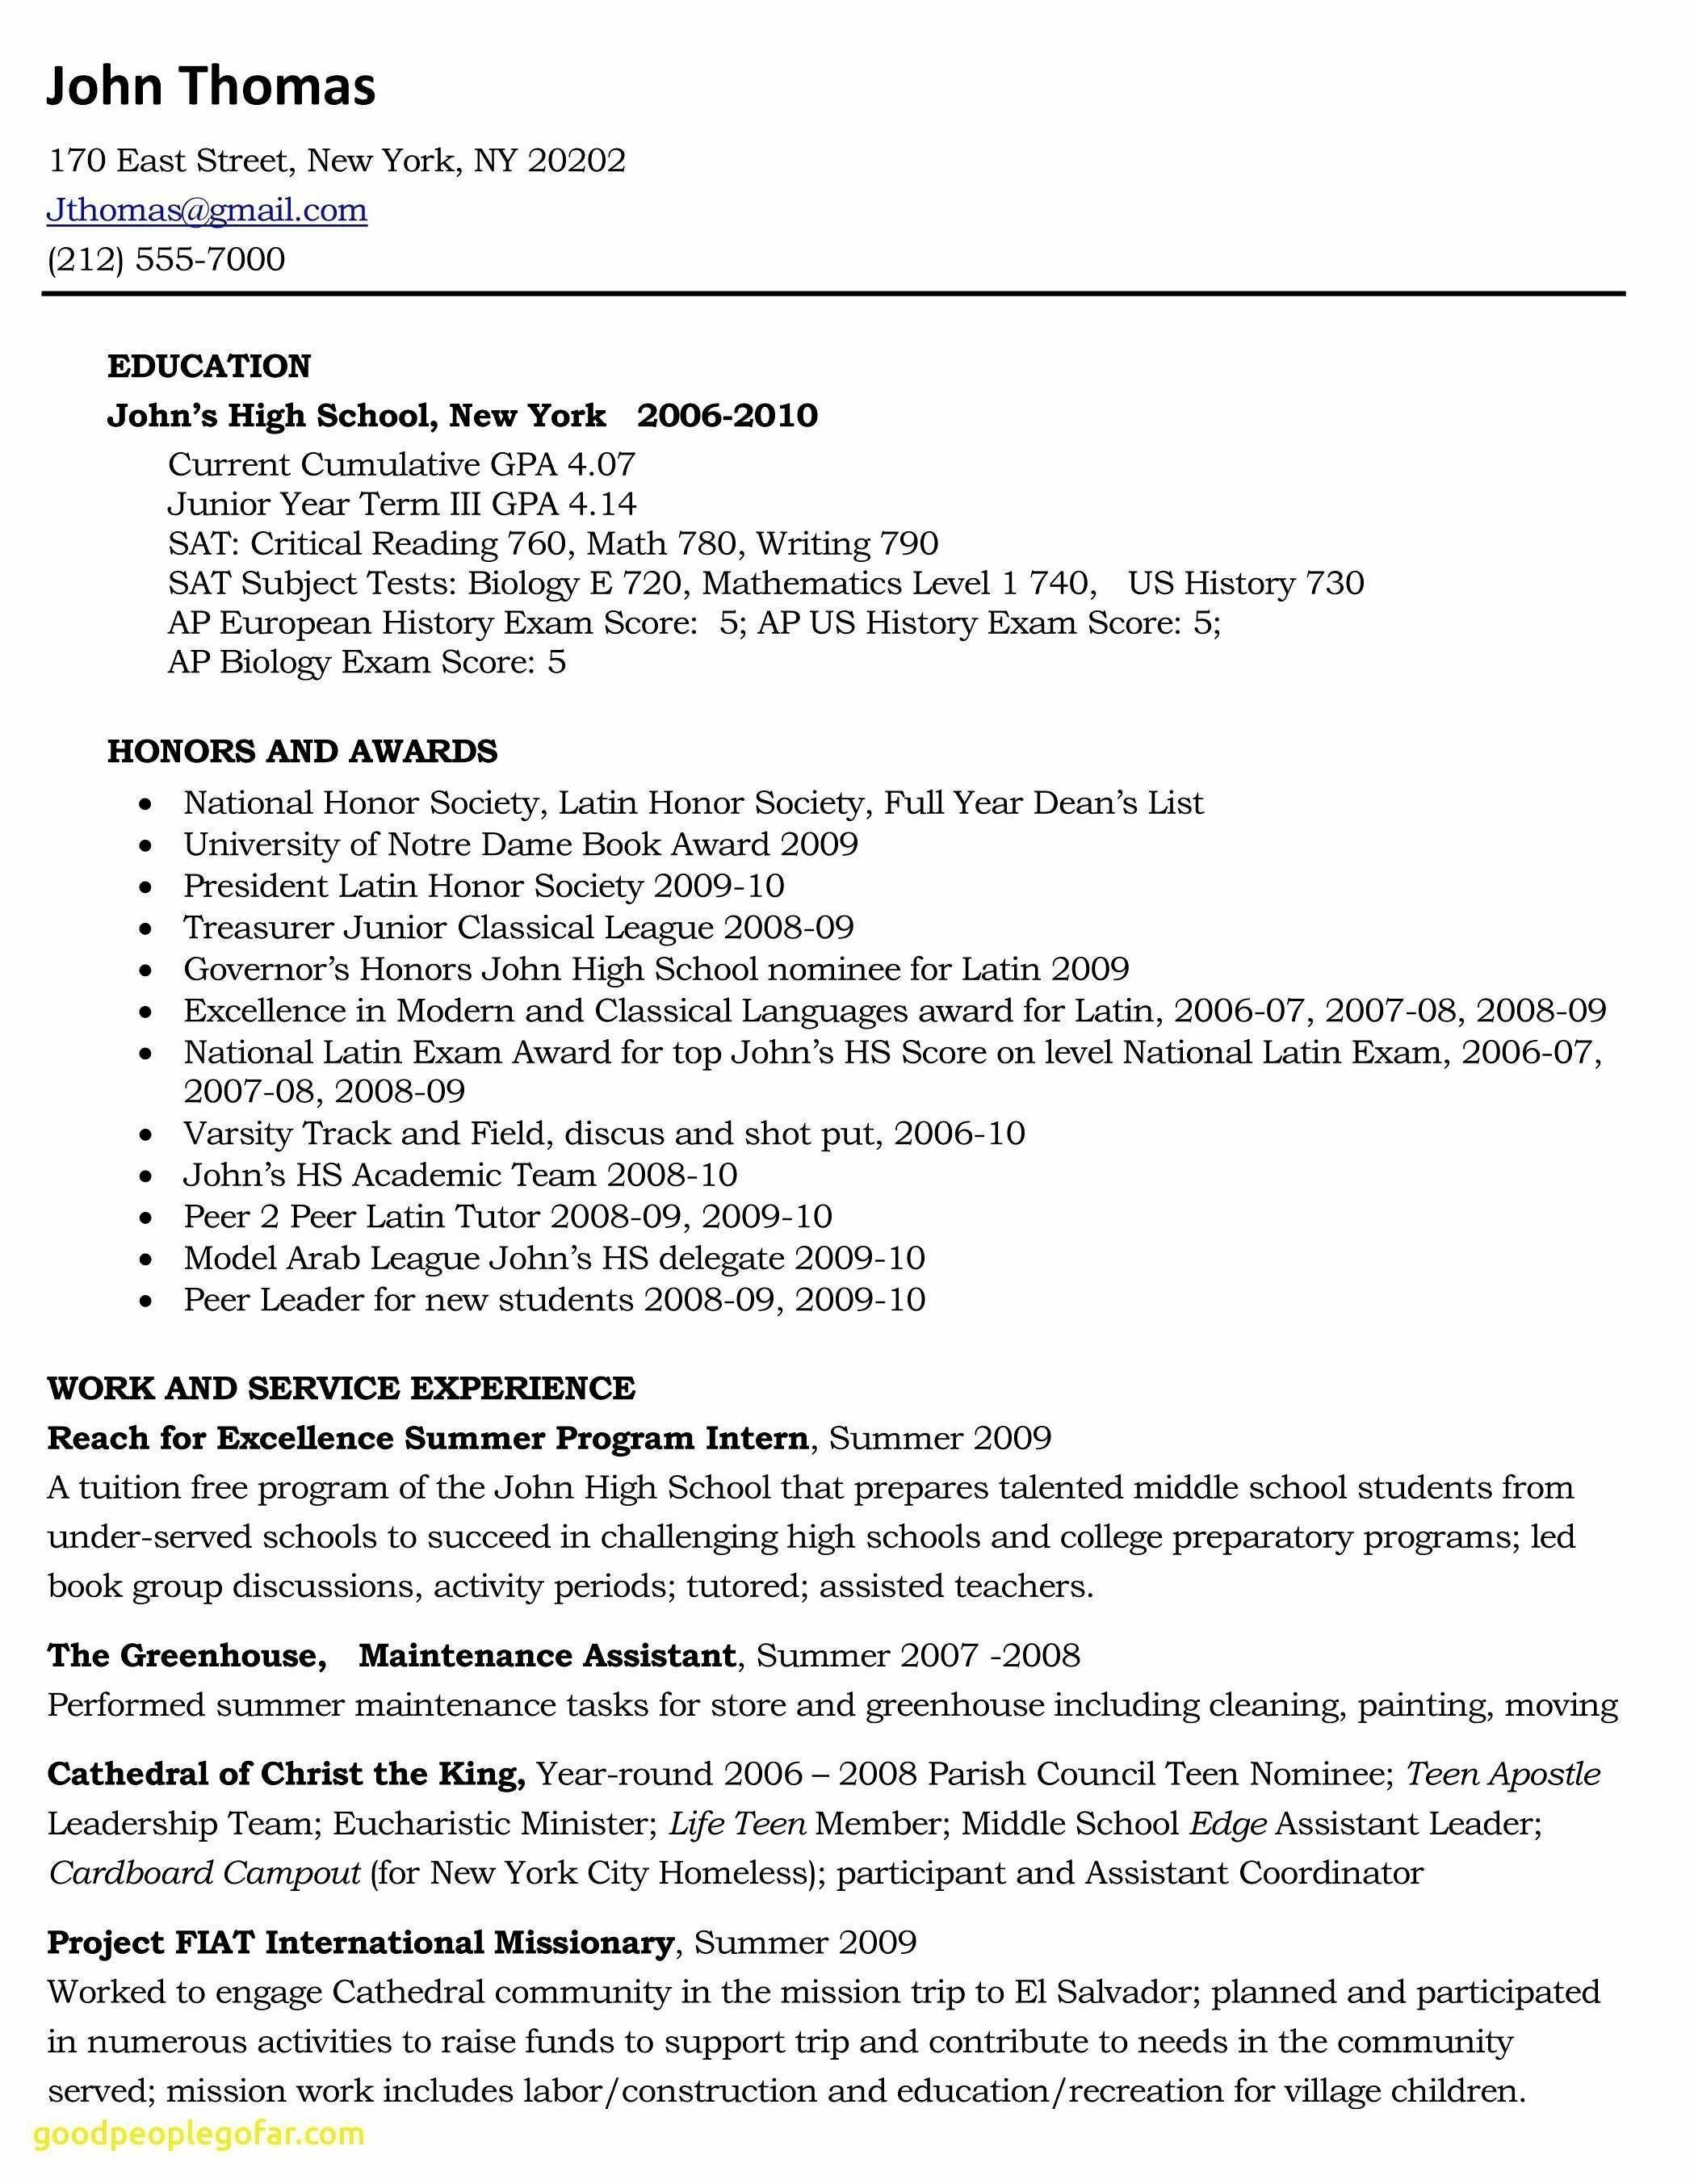 Building Maintenance Resume - Biology Cover Letter New Do A Resume Fresh How to Do A Resume Free